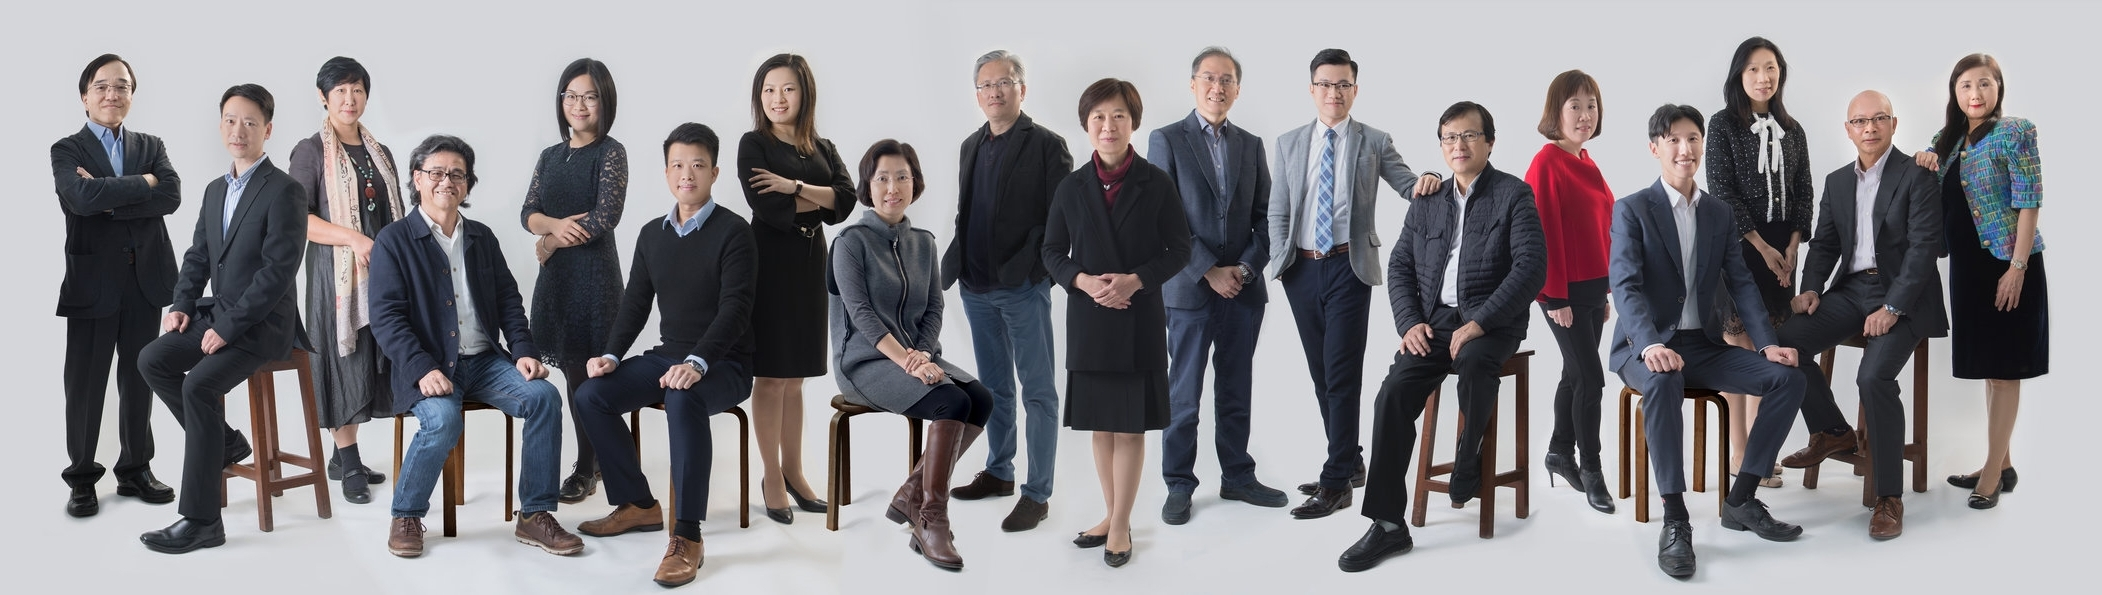 group version2.jpg